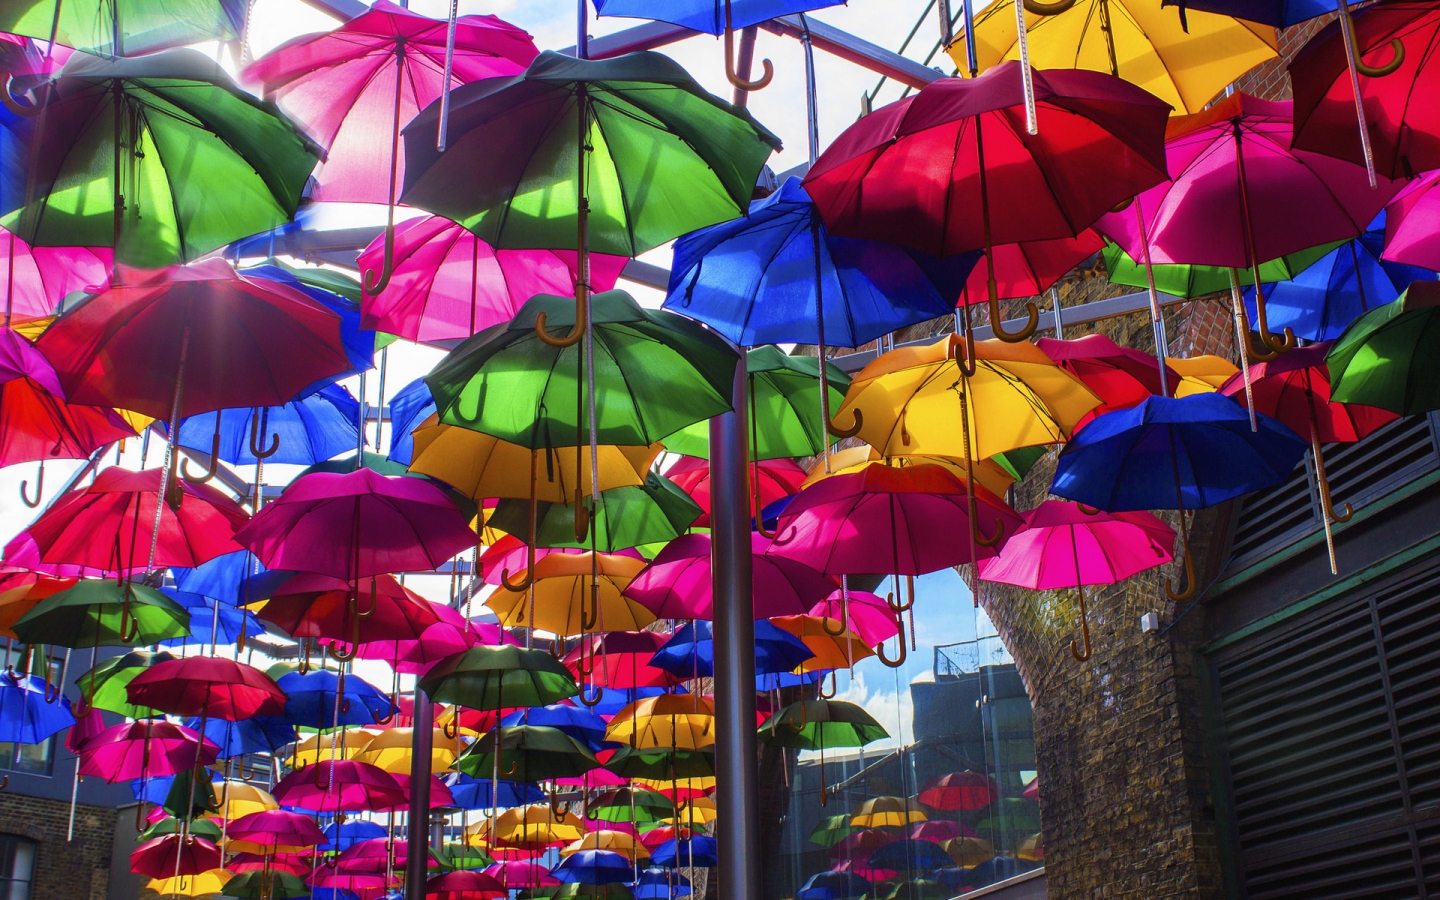 Opened Colorful Umbrellas for 1440 x 900 widescreen resolution